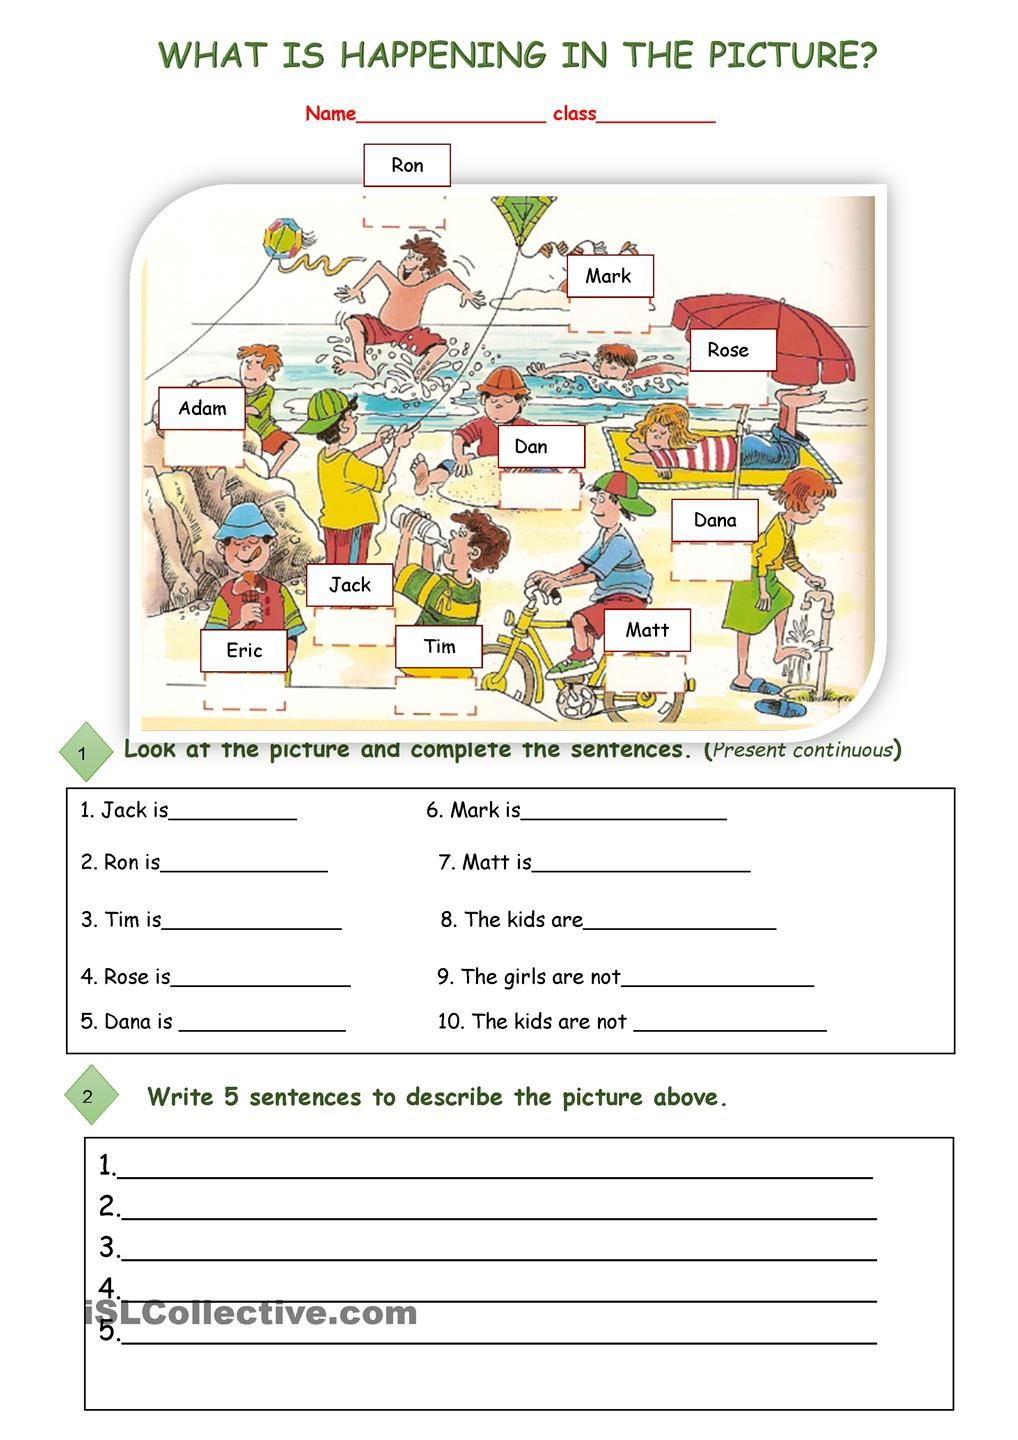 What Is Happening In The Picture English Lessons English Worksheets For Kids Kids English [ 1440 x 1018 Pixel ]